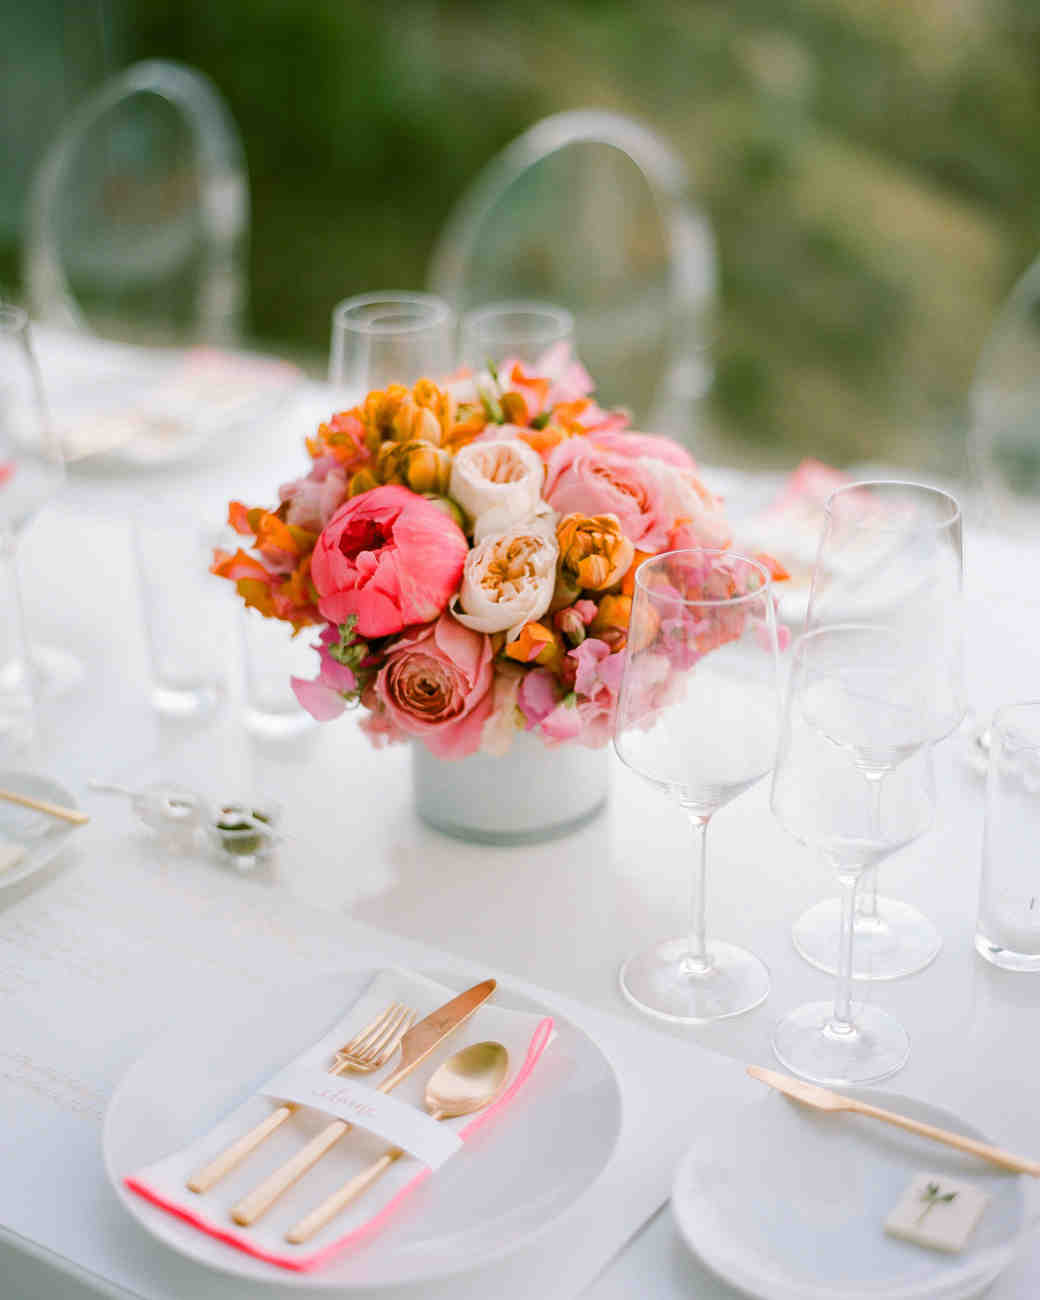 bridal shower centerpiece with pink peonies